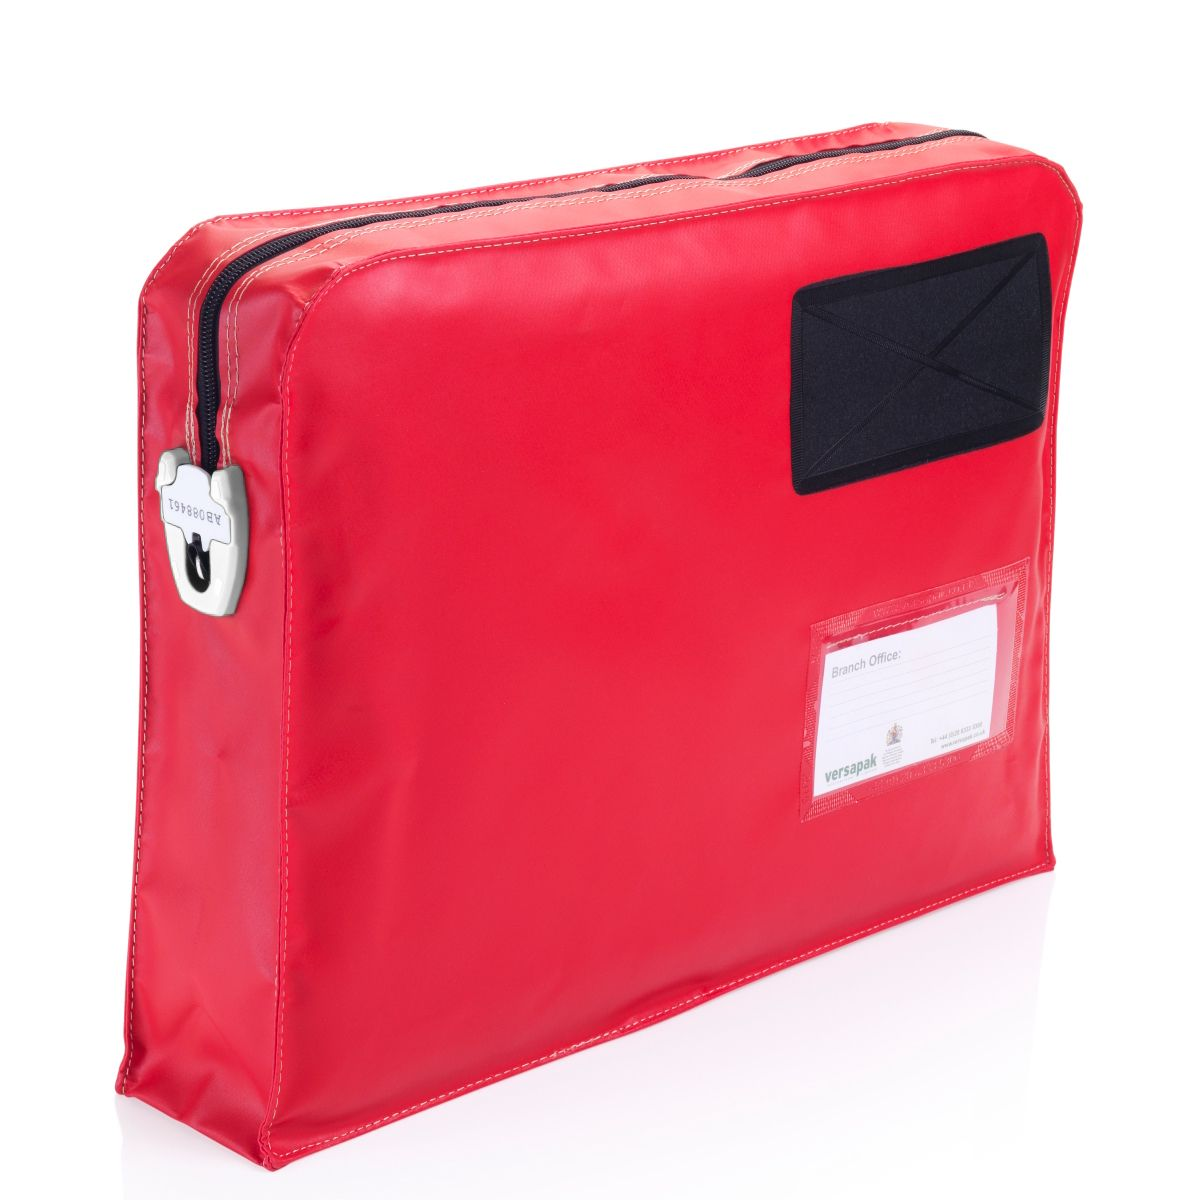 Large Mailing Pouch - Light Duty